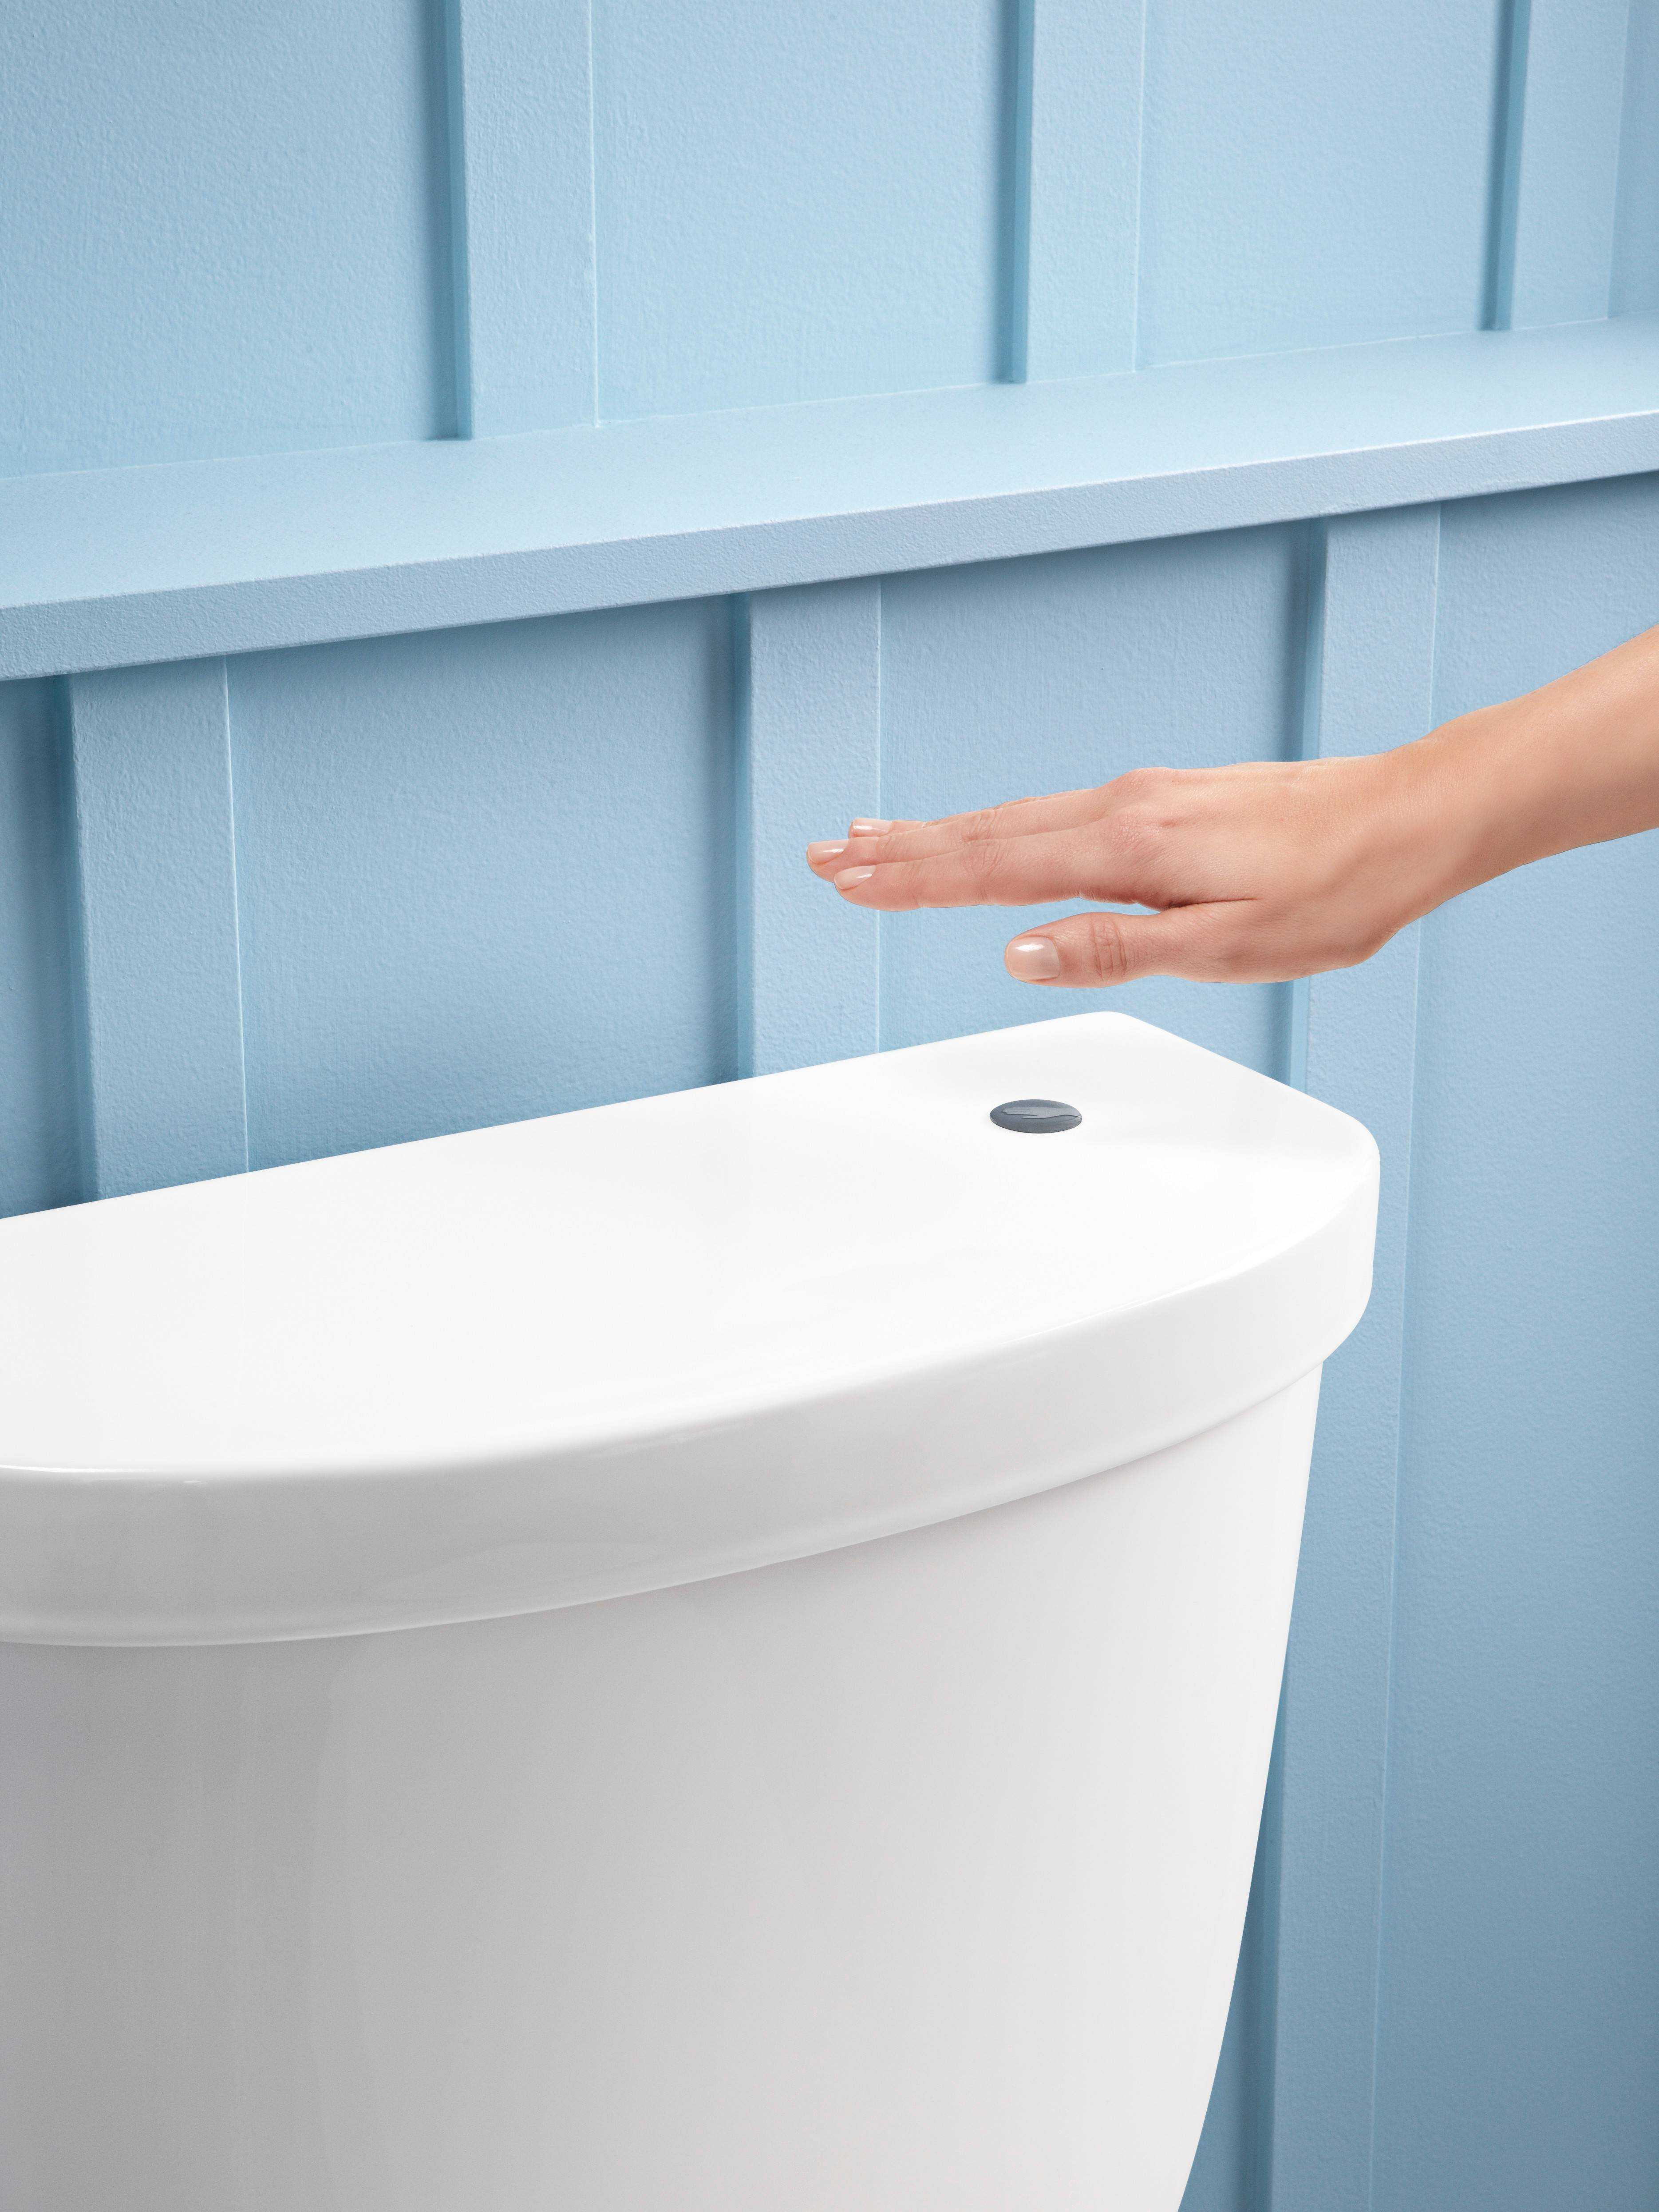 A simple gesture initiates a hands-free flush with this Kohler touchless toilet.